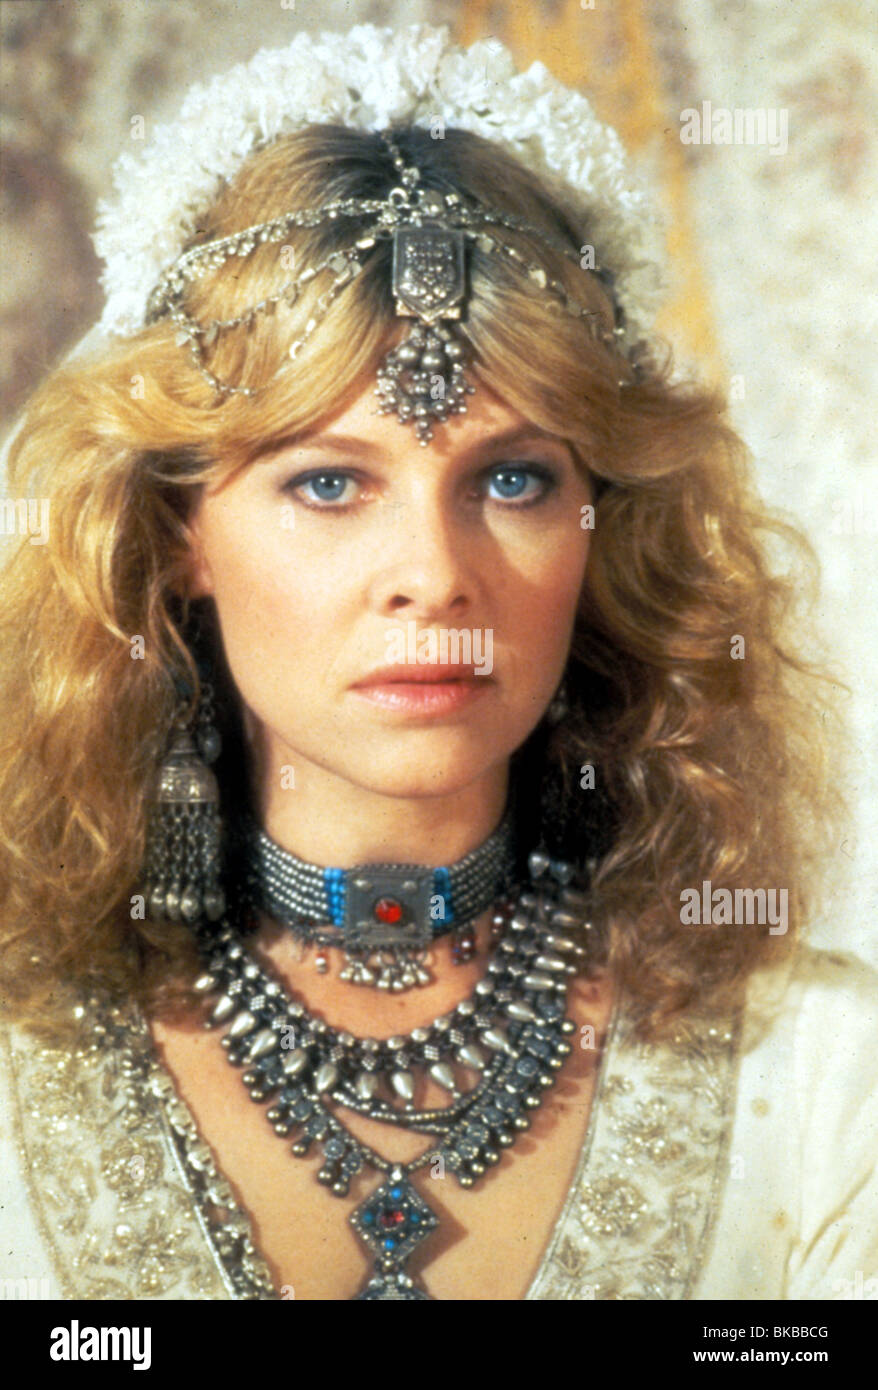 indiana jones and the temple of doom 1984 kate capshaw